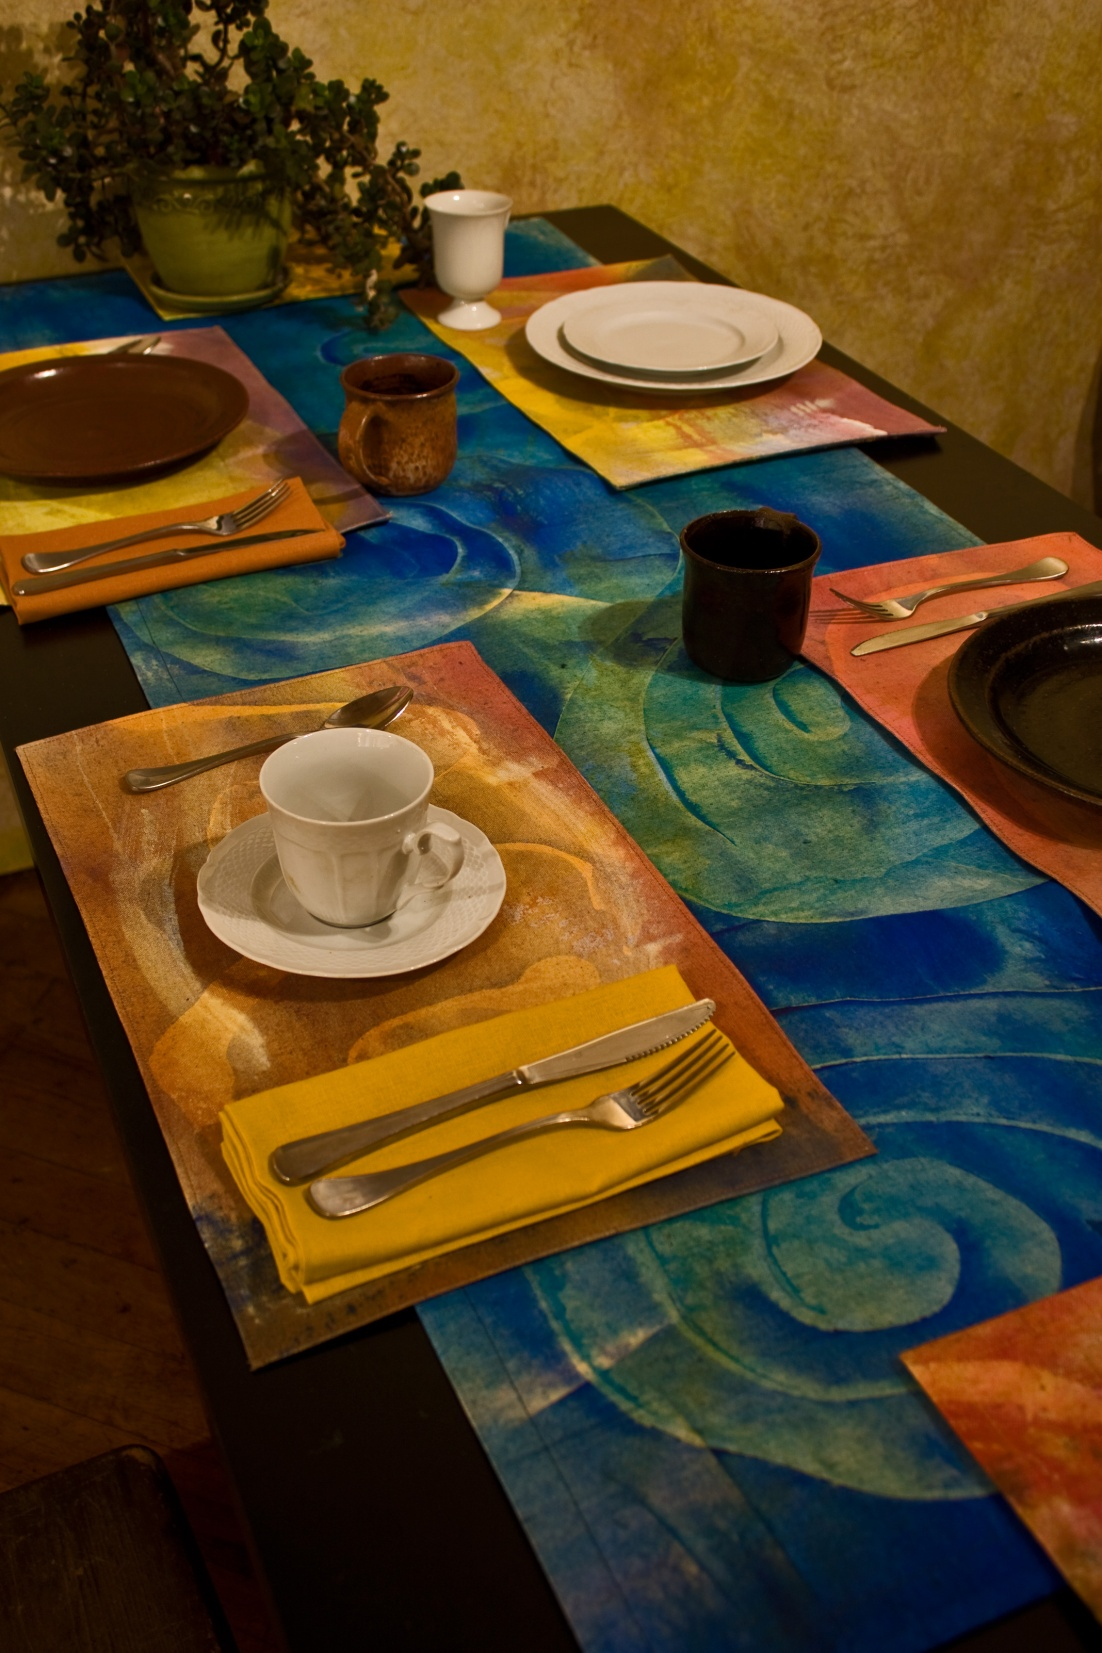 combined with placemats (these have sold, but I have several new sets)